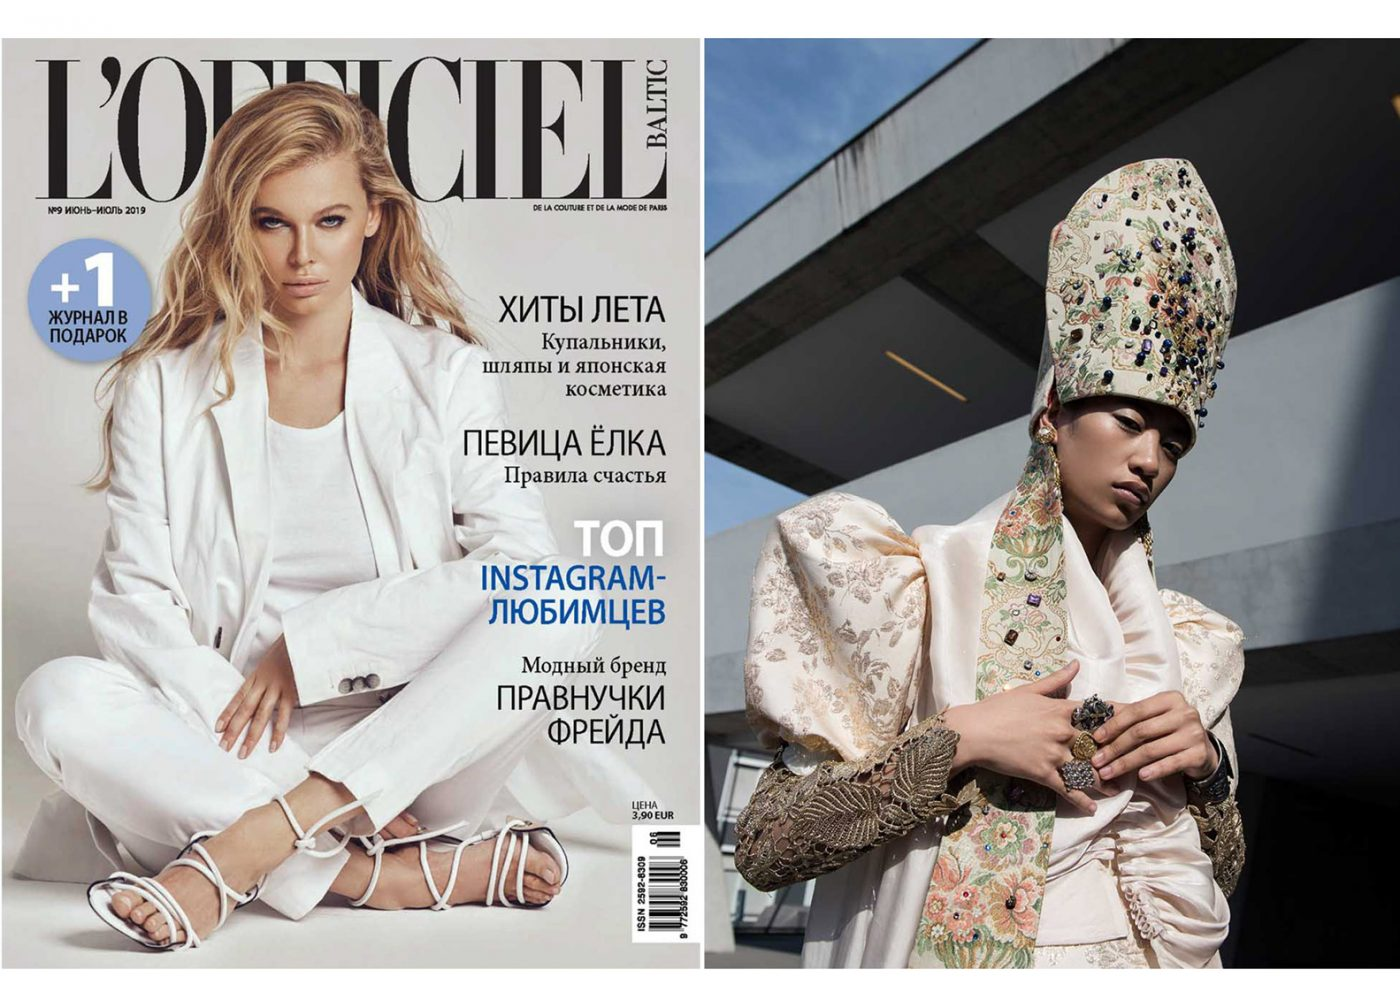 L'Officiel-Baltics